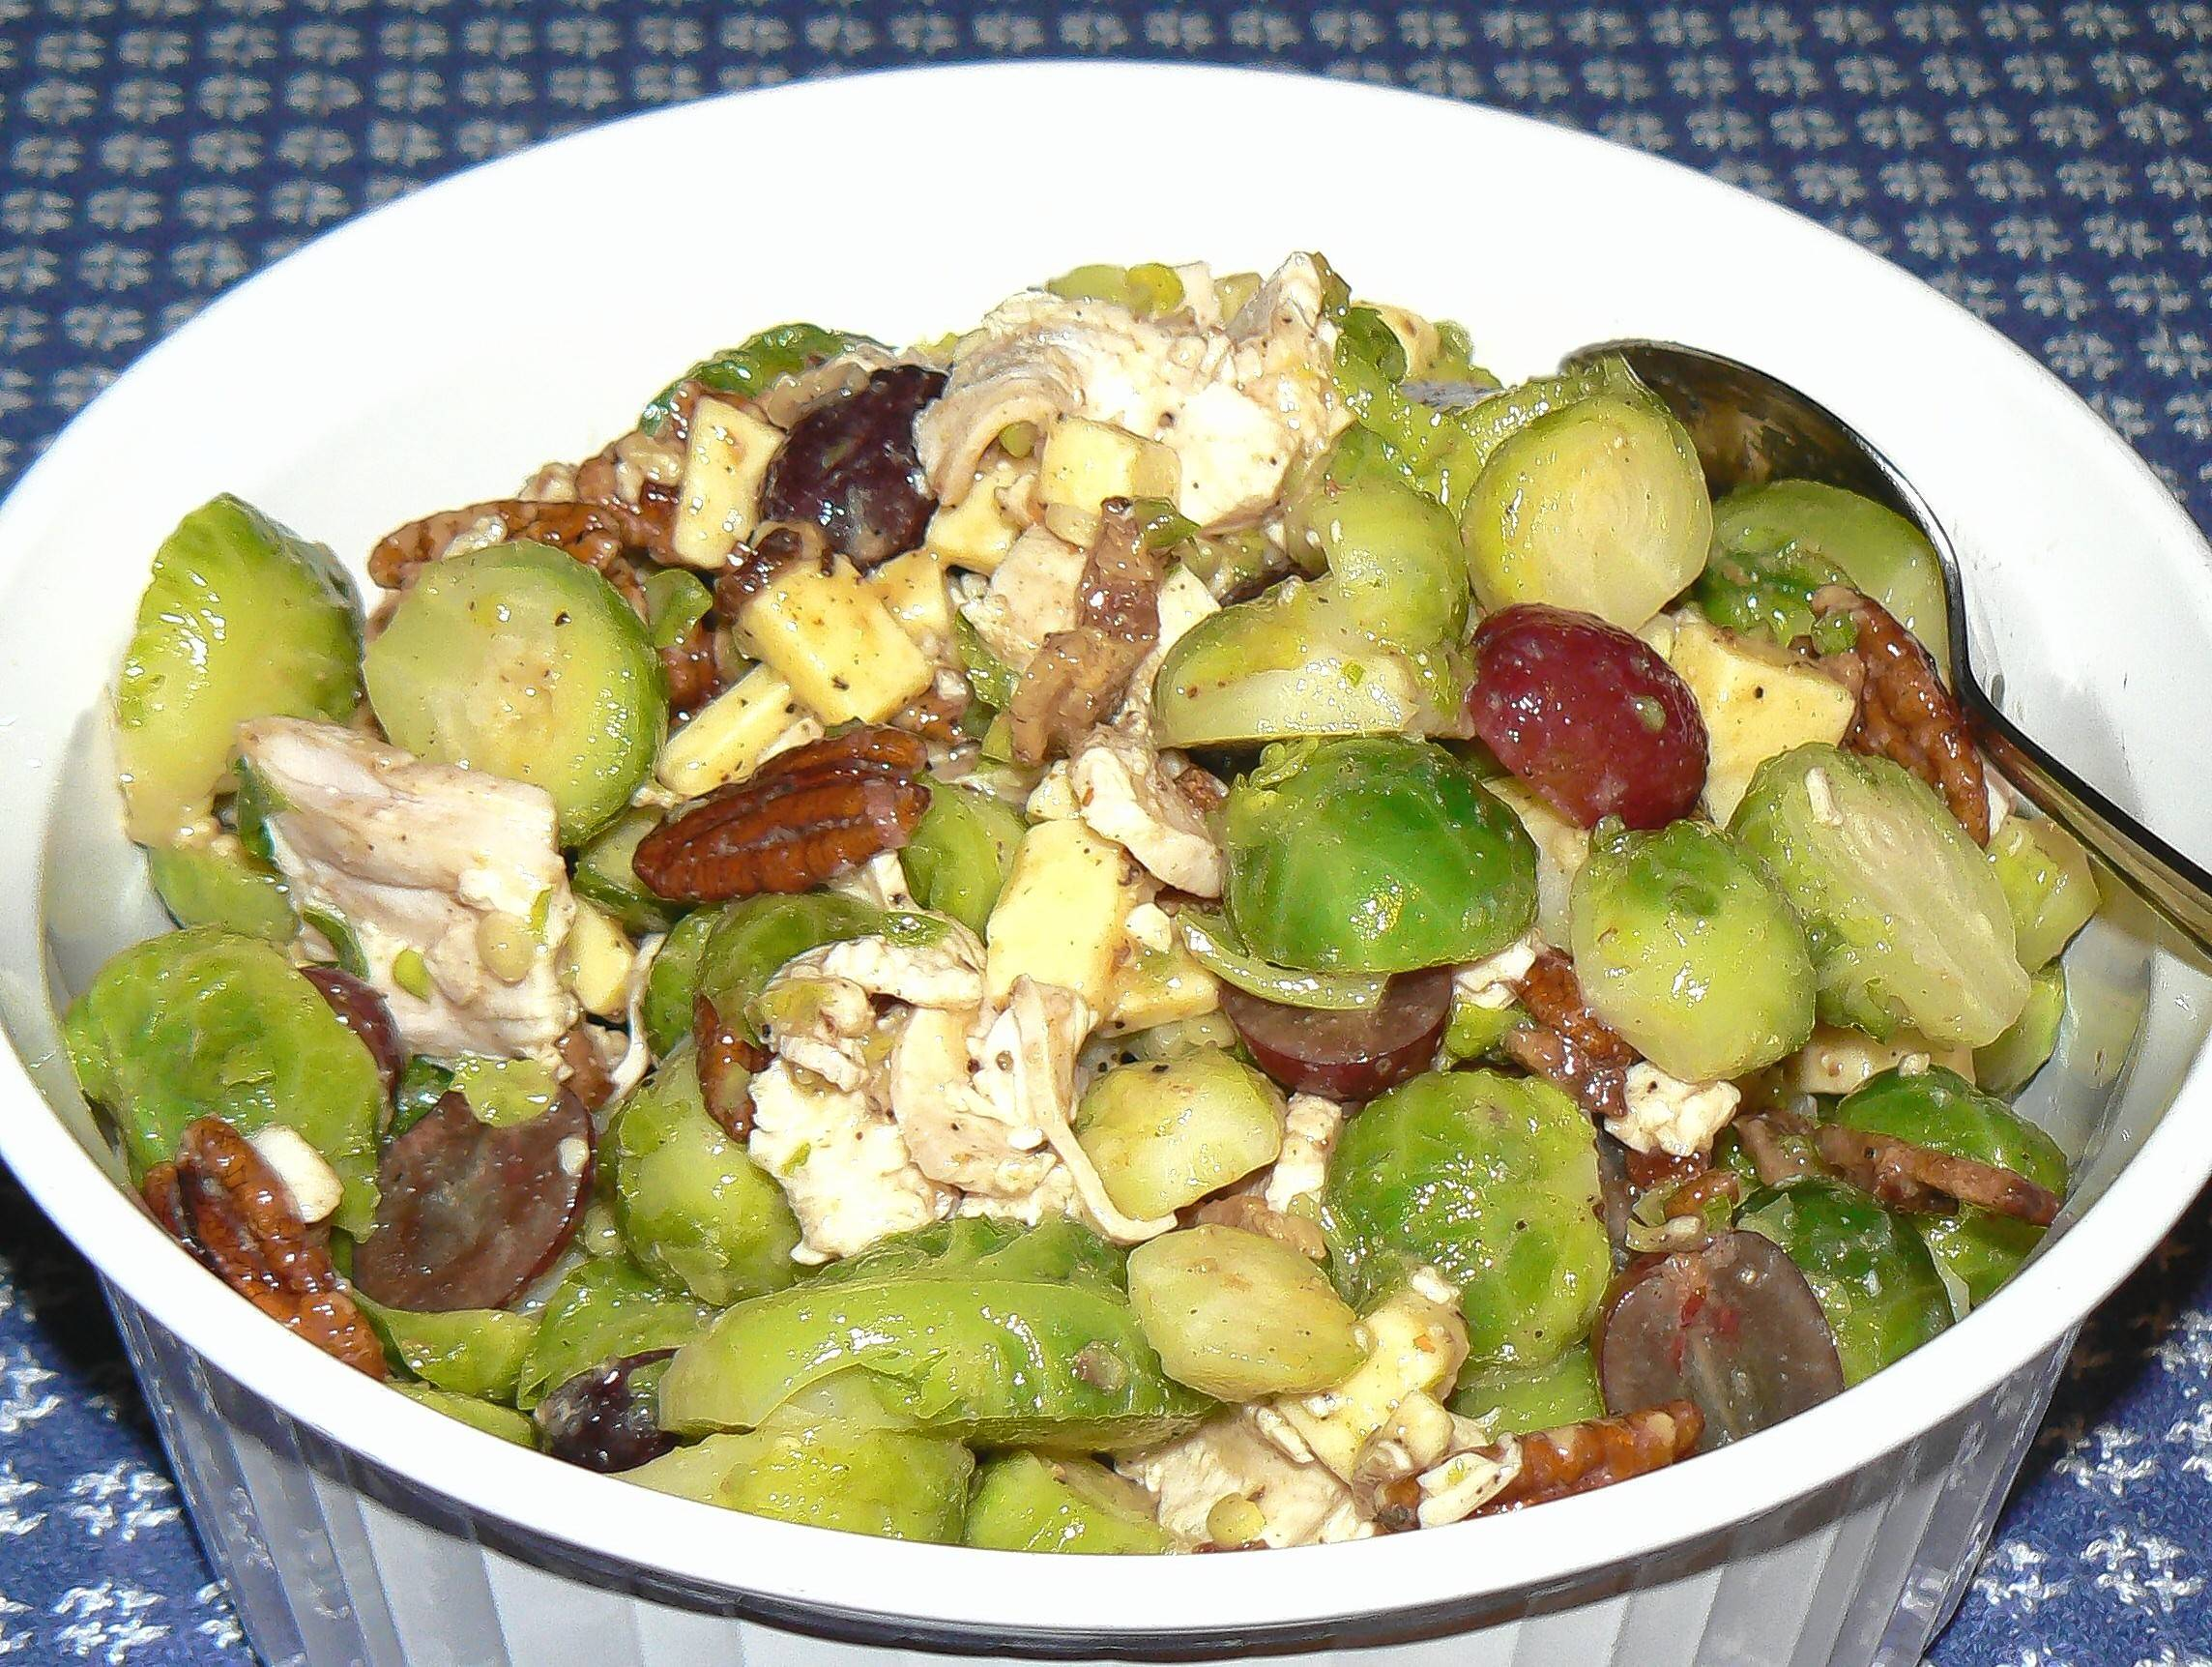 Leftover turkey meets seedless grapes, Brussels sprouts and toasted pecans in this post-Thanksgiving salad.